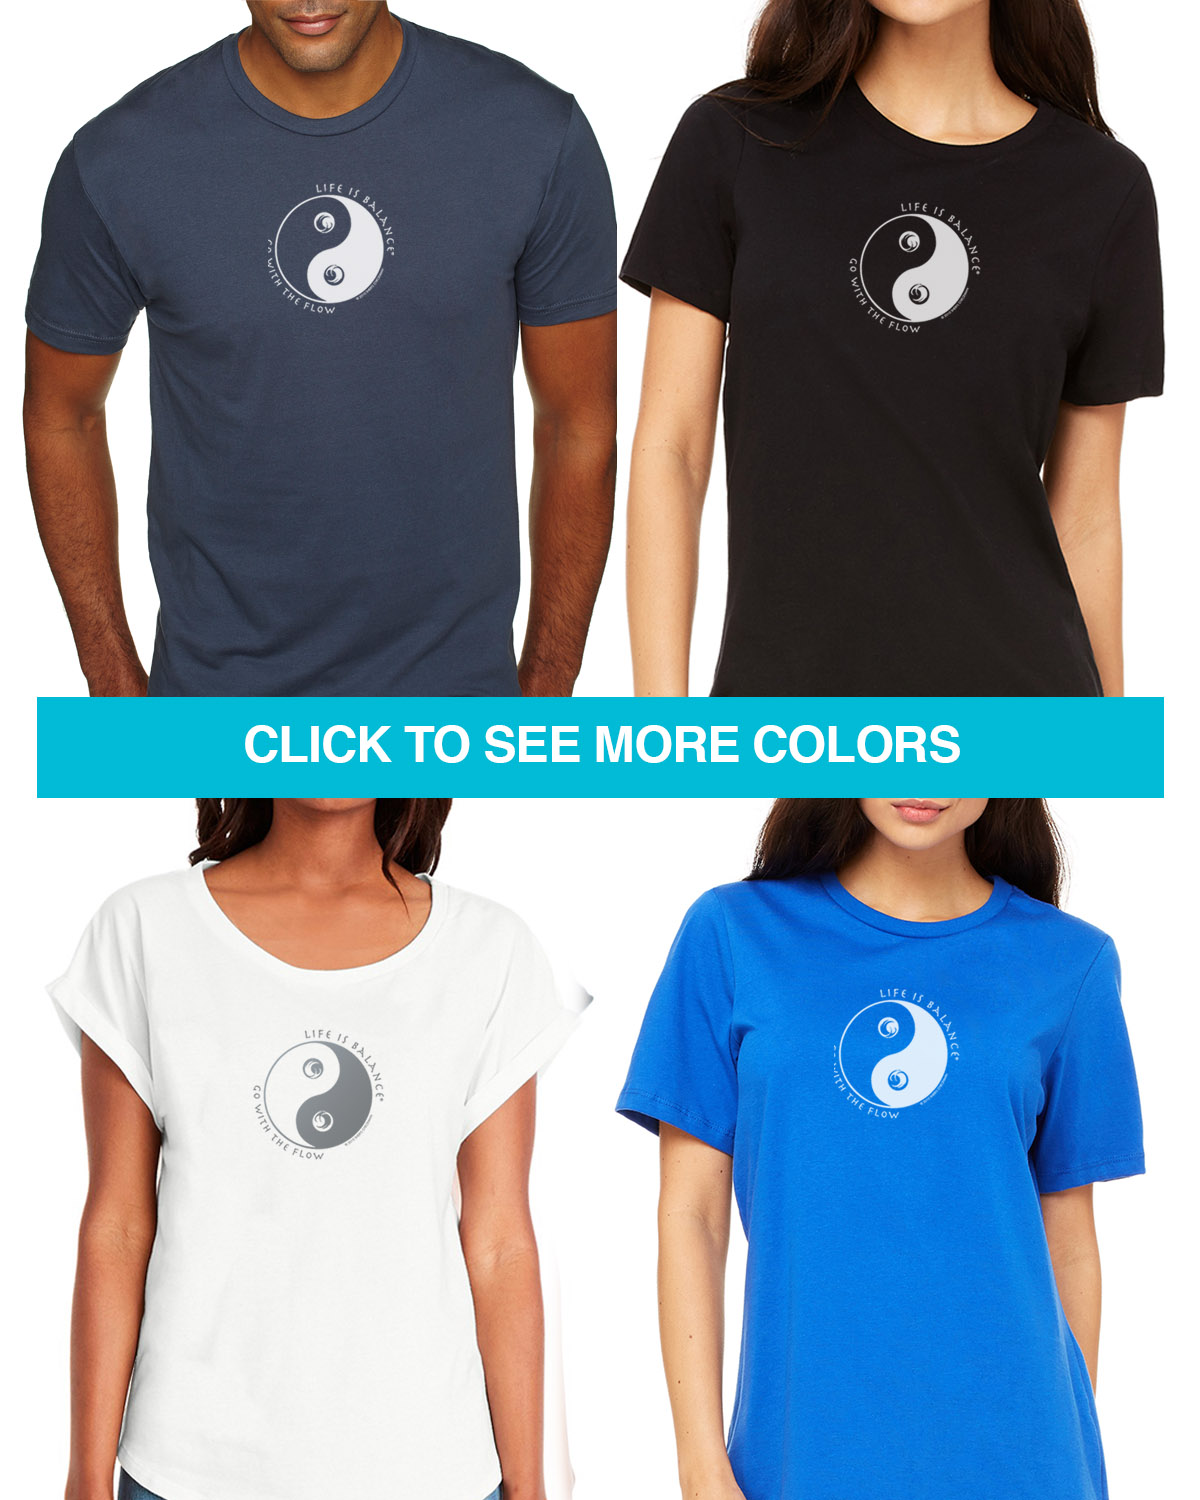 Ocean short sleeve T-shirts for Men and Women. Women's fitted styles and a unisex style for men and women